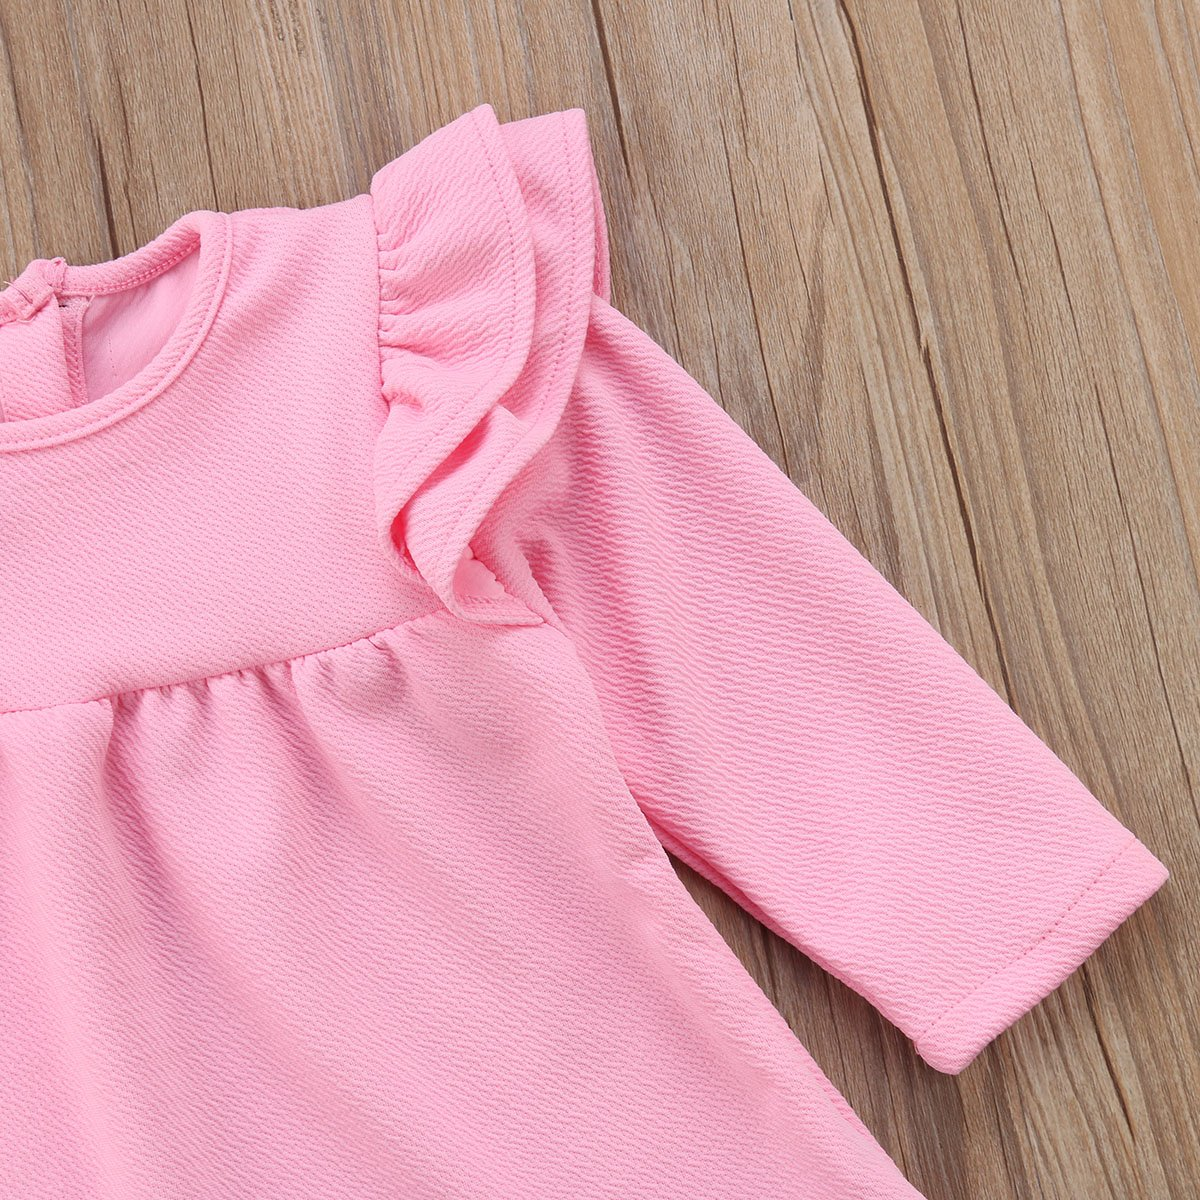 GoodFilling Infant Toddler Baby Girls Long Sleeve Christmas Autumn Winter Cotton Top